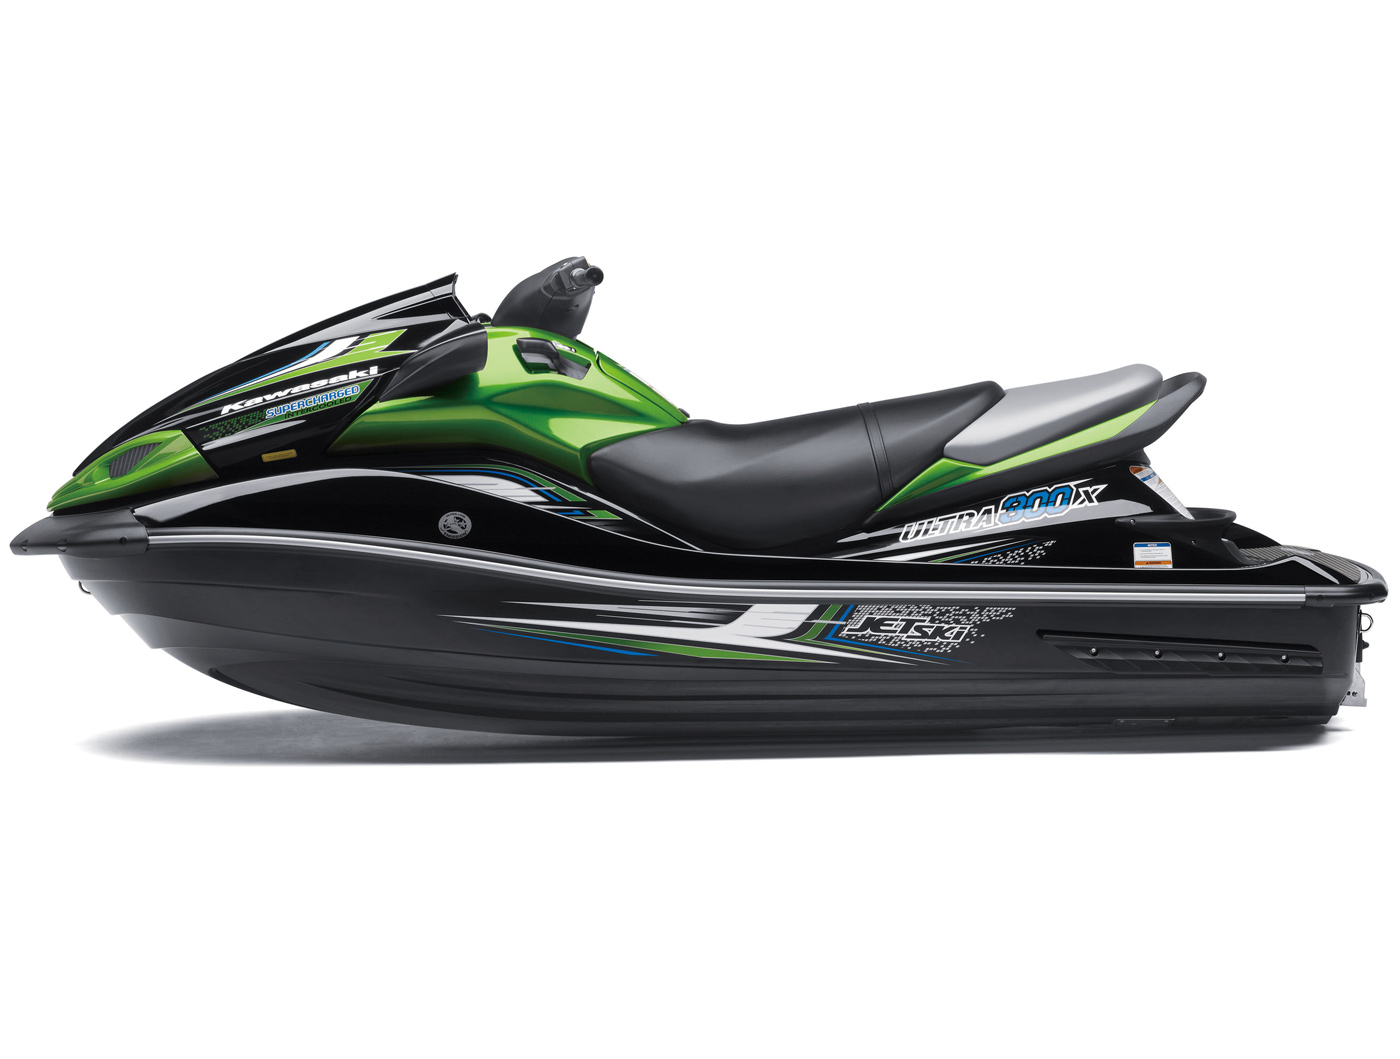 Otago personal watercraft watercraft for Yamaha waverunner dealers near me